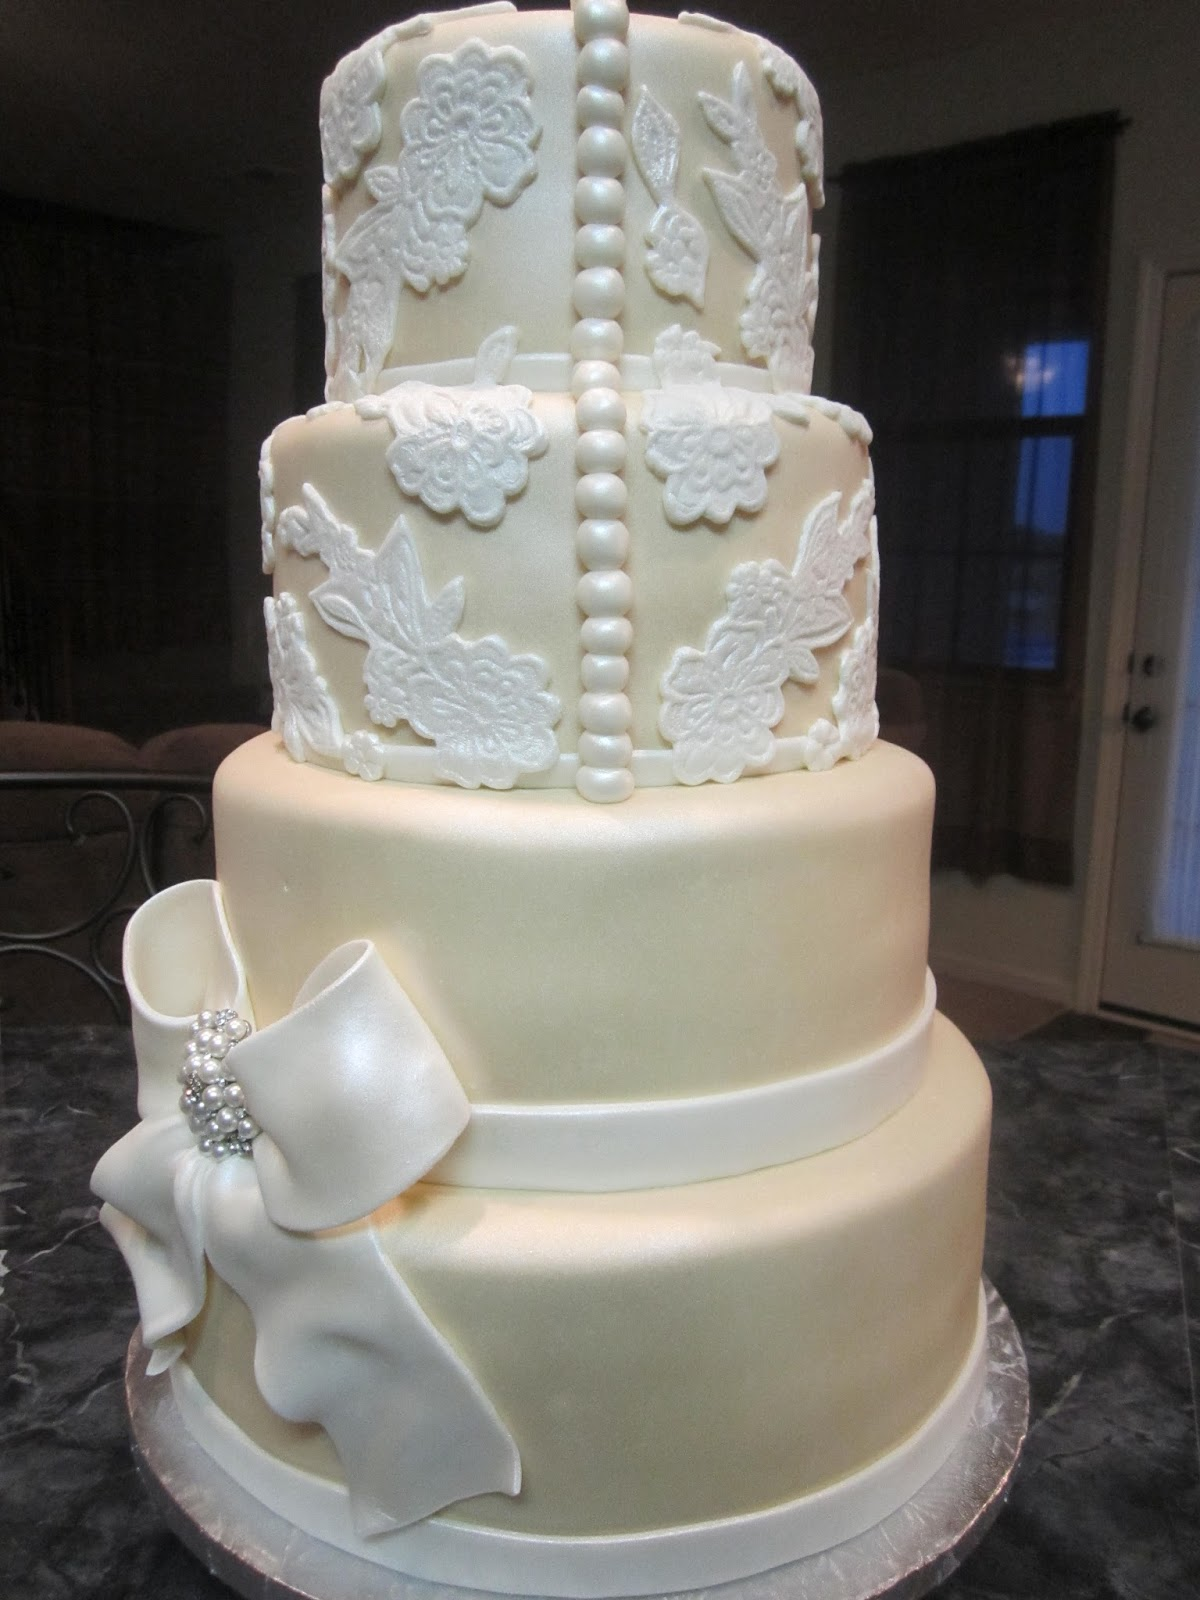 MyMoniCakes Elegant Beige Wedding Cake With Lace Accents And Bow